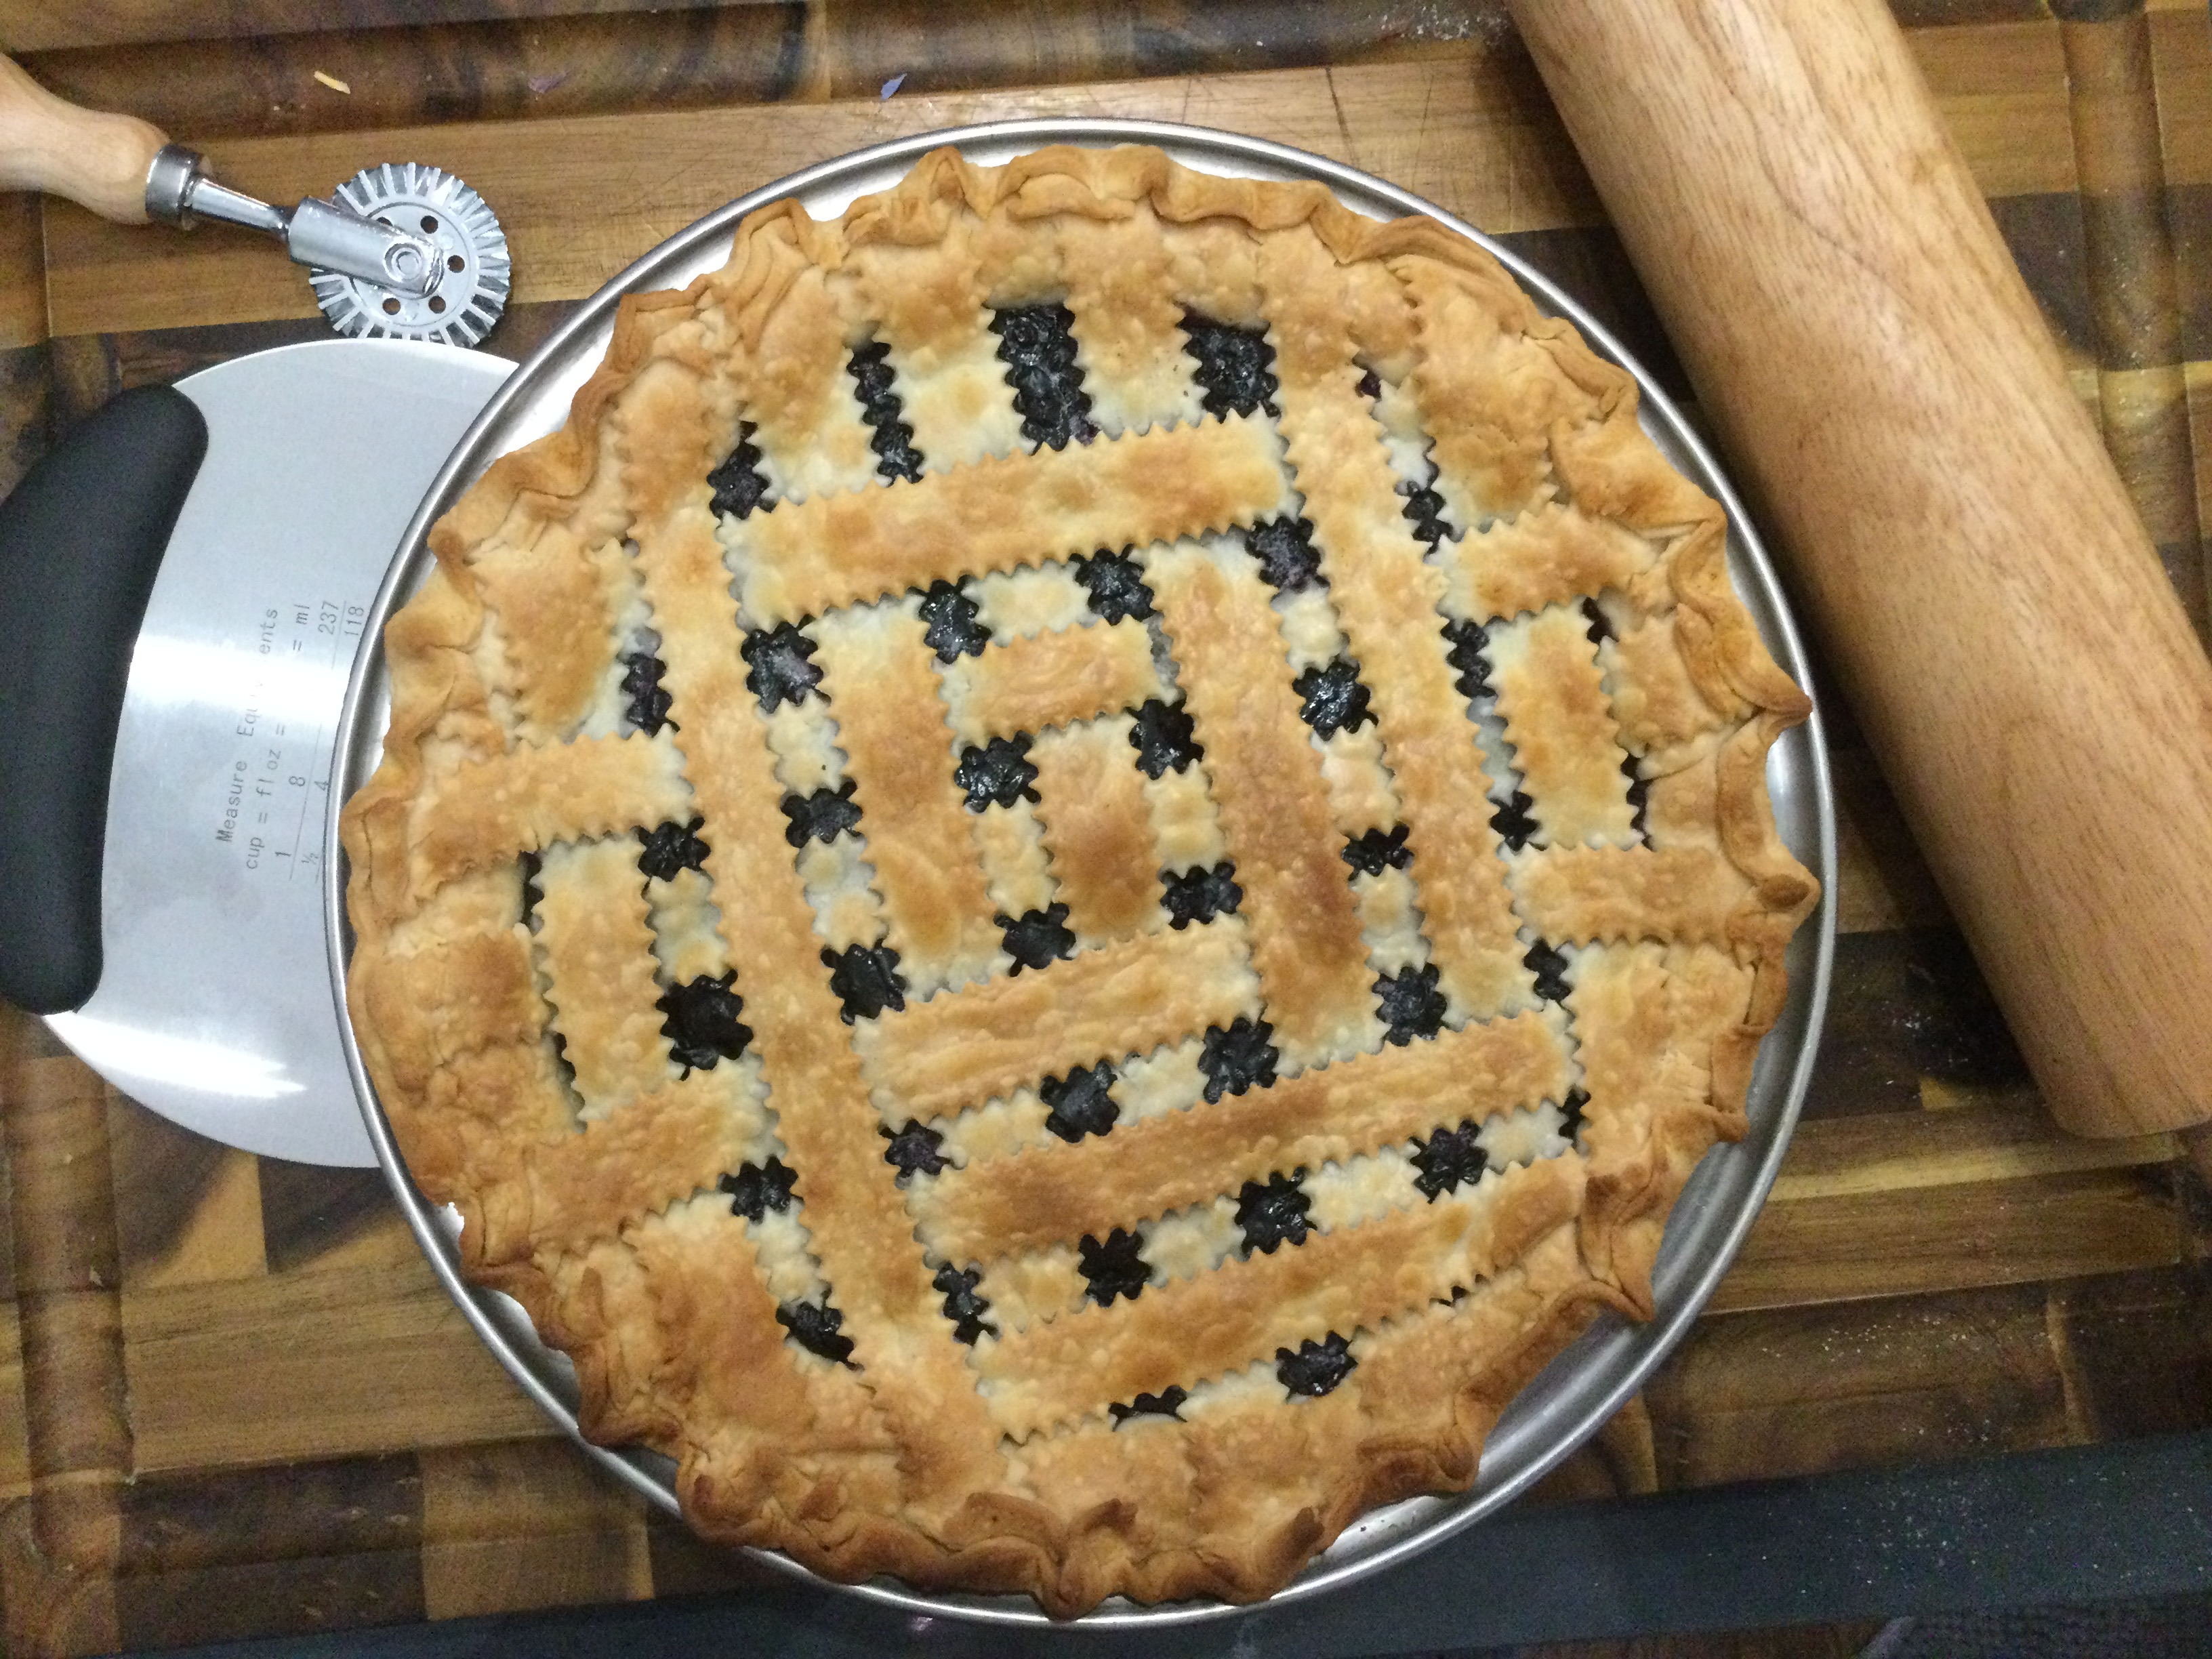 Blueberry Pie with Frozen Berries Lisa